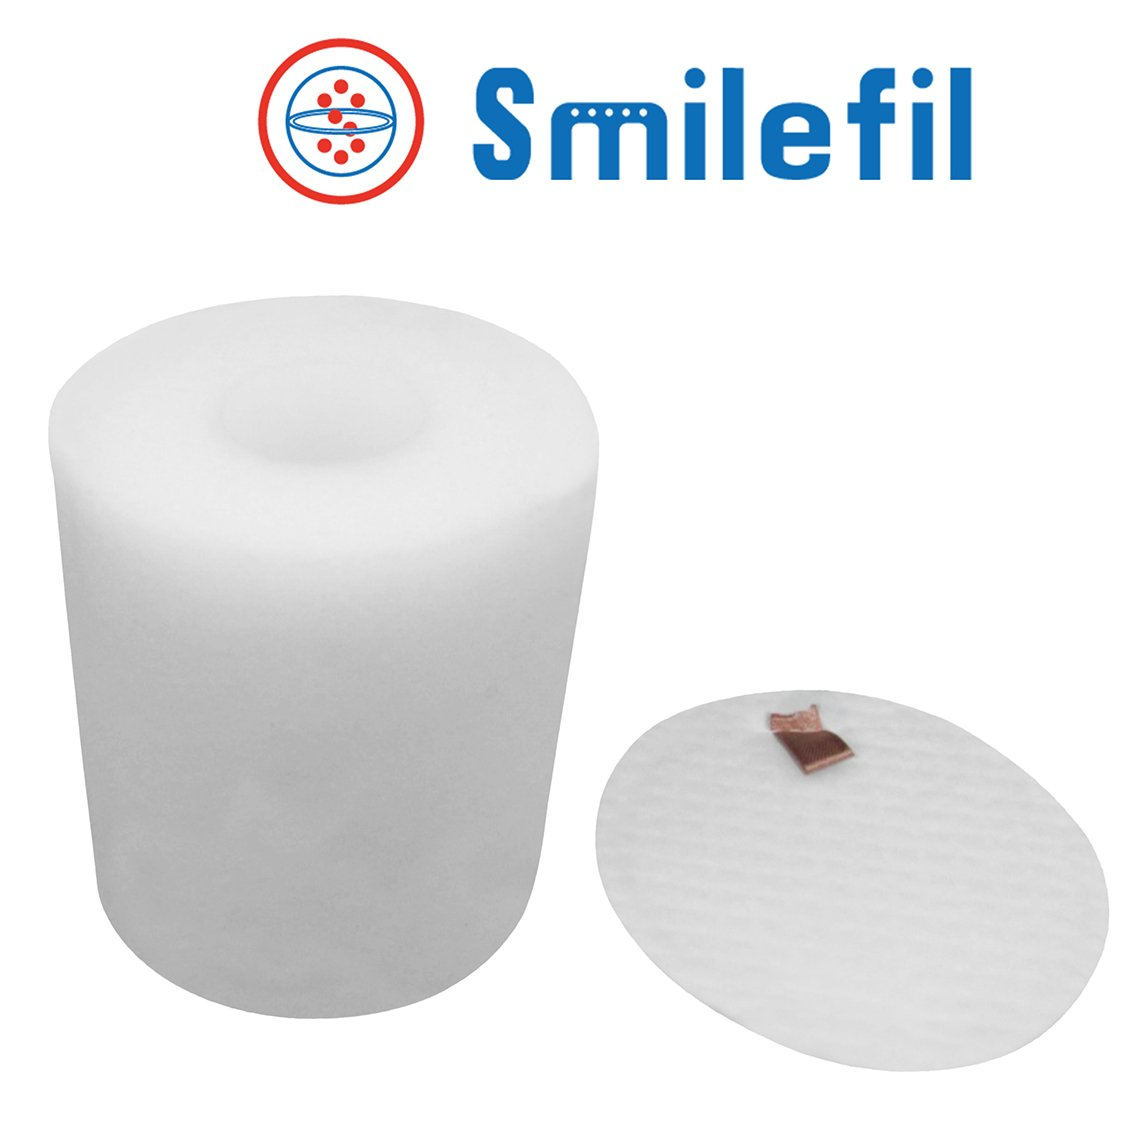 Smilefil Shark XFF500 Replacement Foam & Felt Filter Kit to Fit Shark NV500, NV500CO, NV501, NV502, NV503, NV505, NV510, NV500W&NV550, NV552, UV560. Replaces Part #XFF500